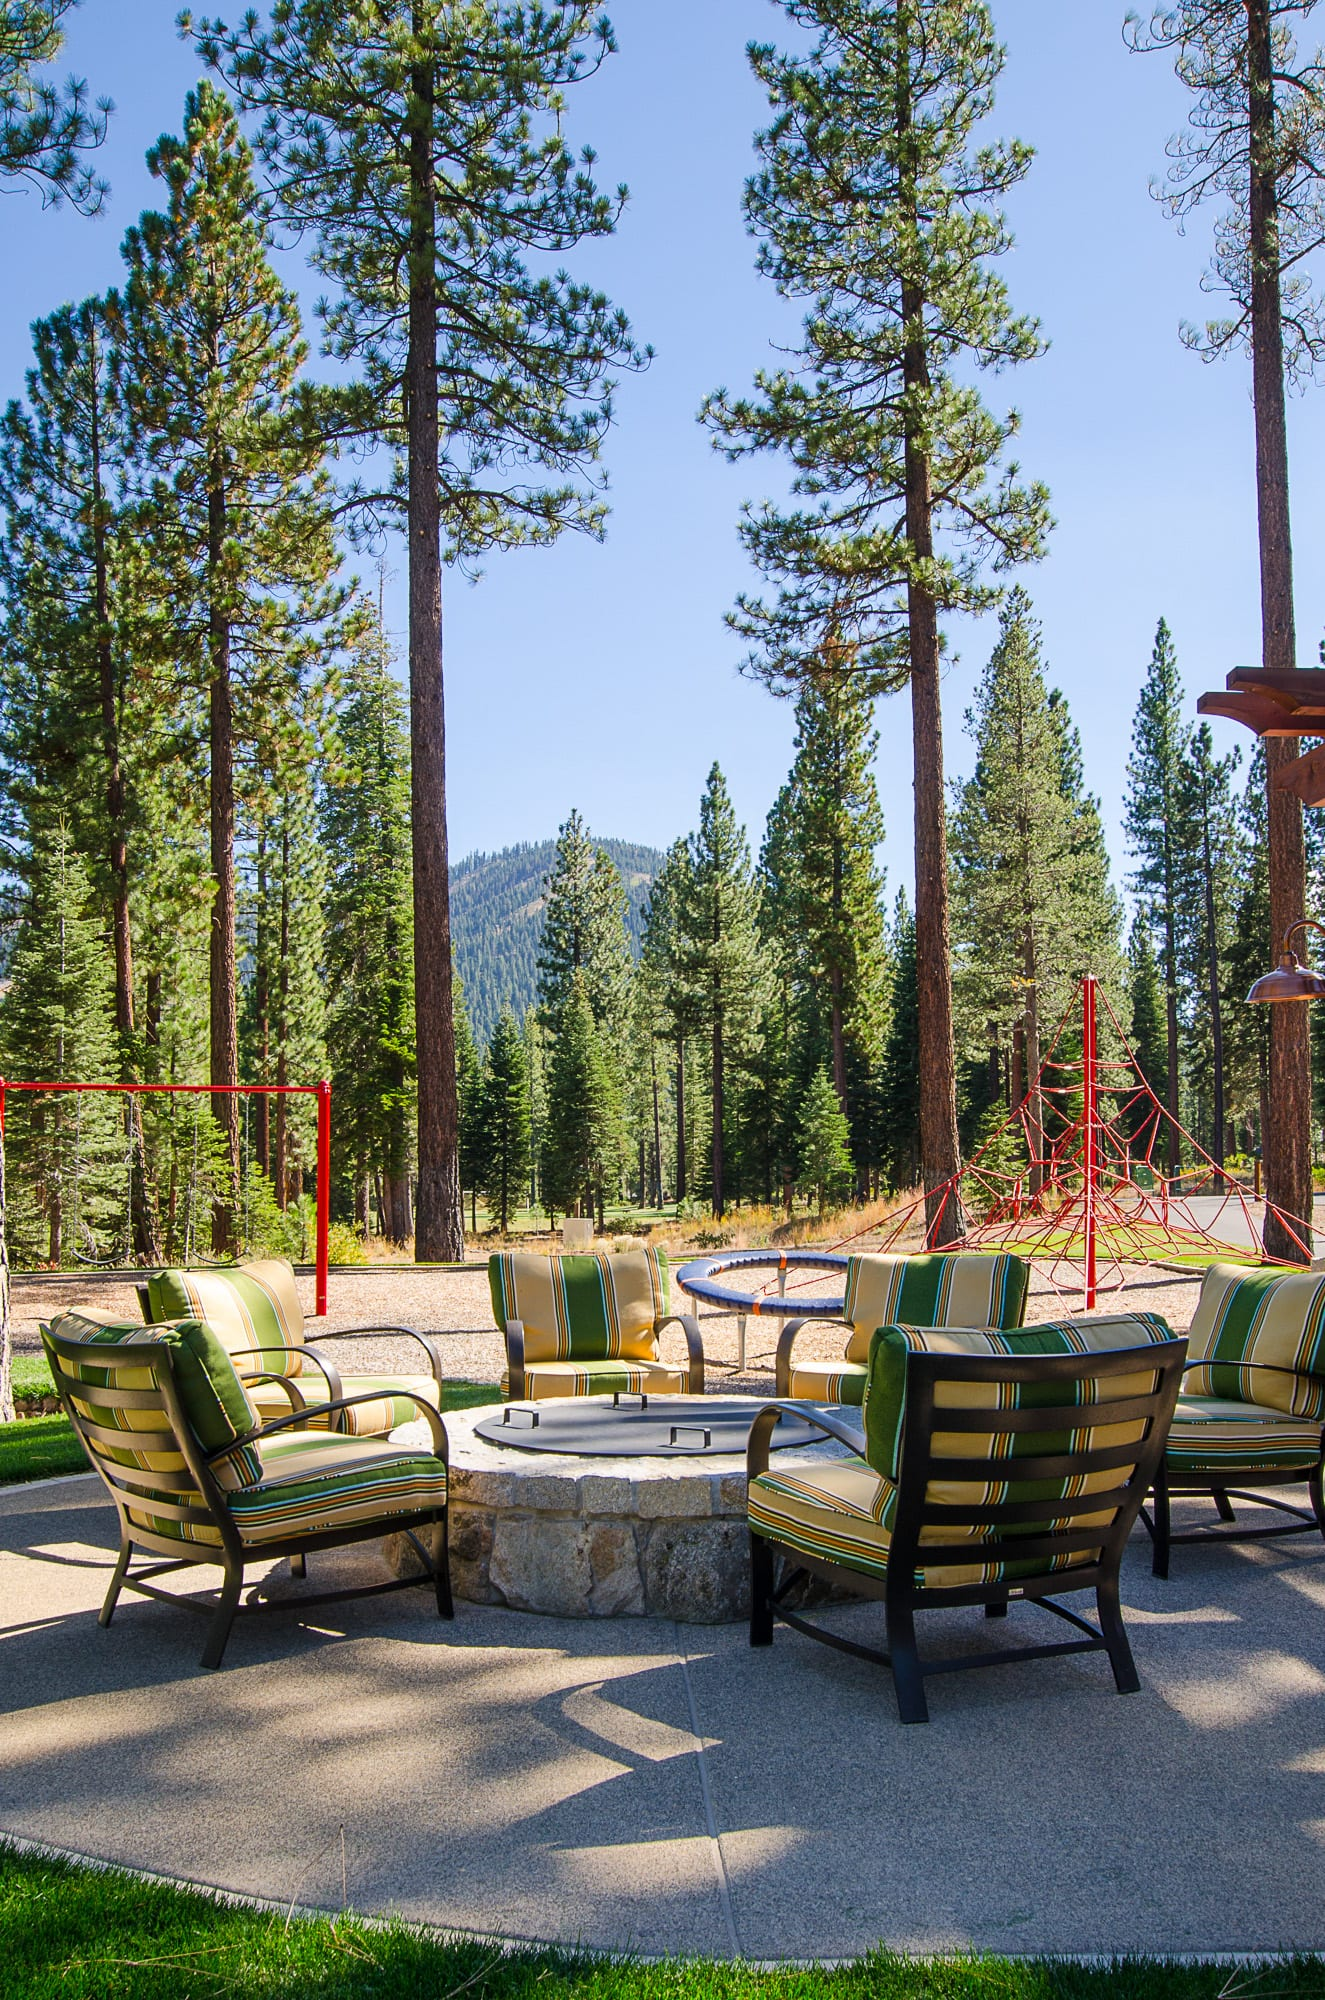 truckee-landscaping-commercial